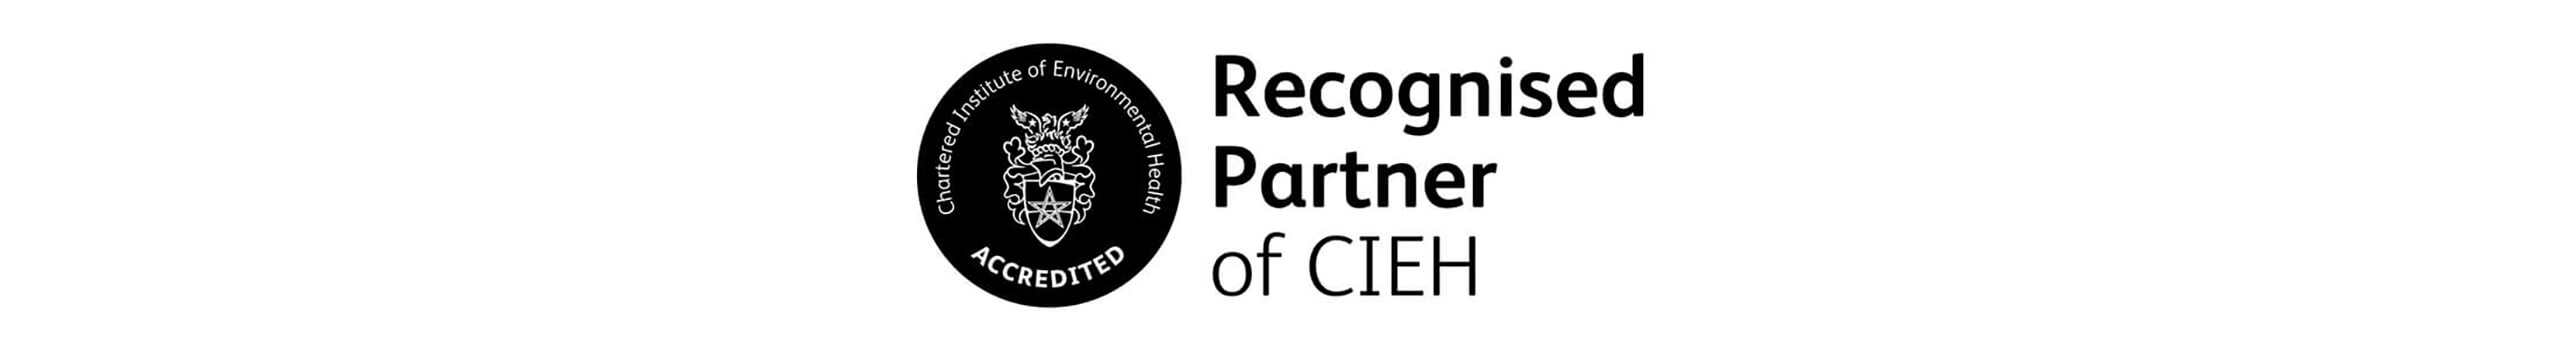 Recognised partner of CIEH logo